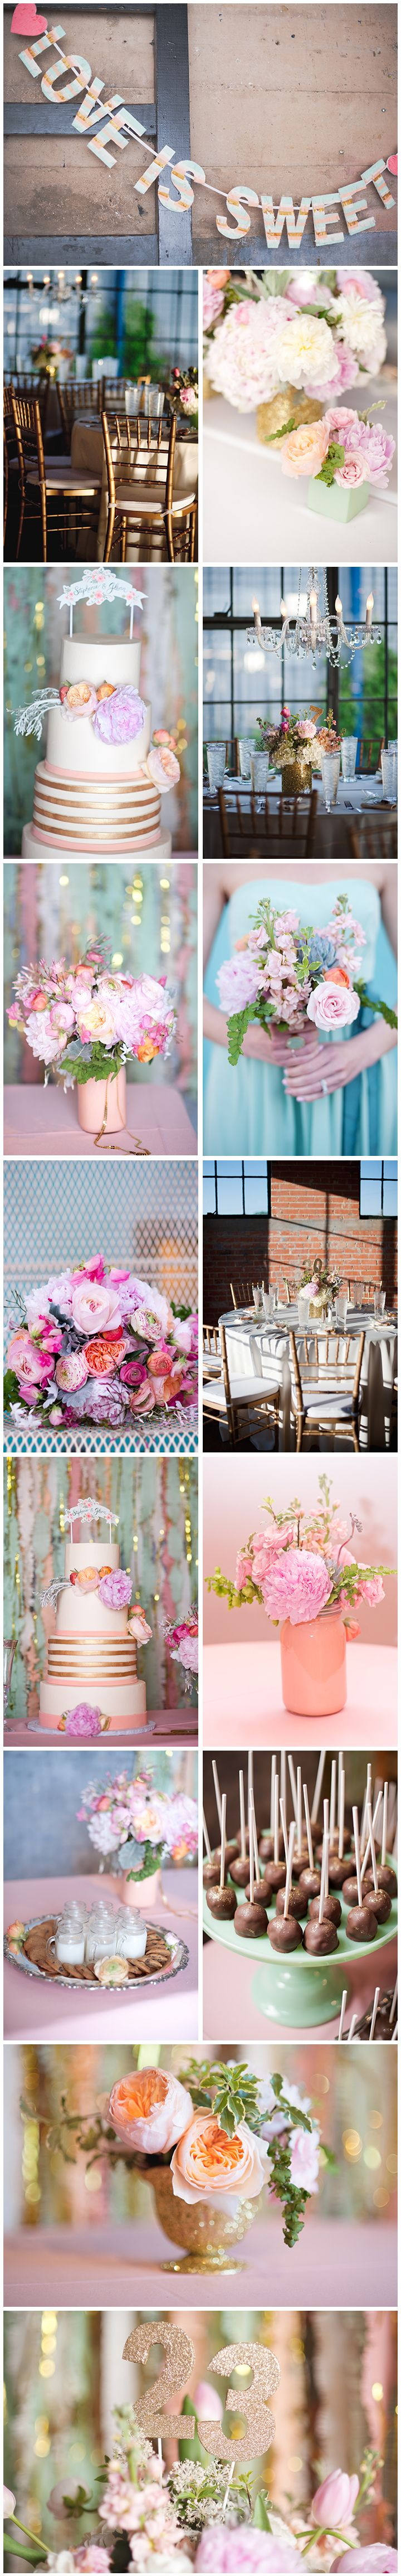 Pastel water colored wedding pallet  @Alicia Rico  @Kelli at Nine Photography  Dallas Fort Worth Wedding Photographers  #spingweddings #springweddingcolors #springbouquets